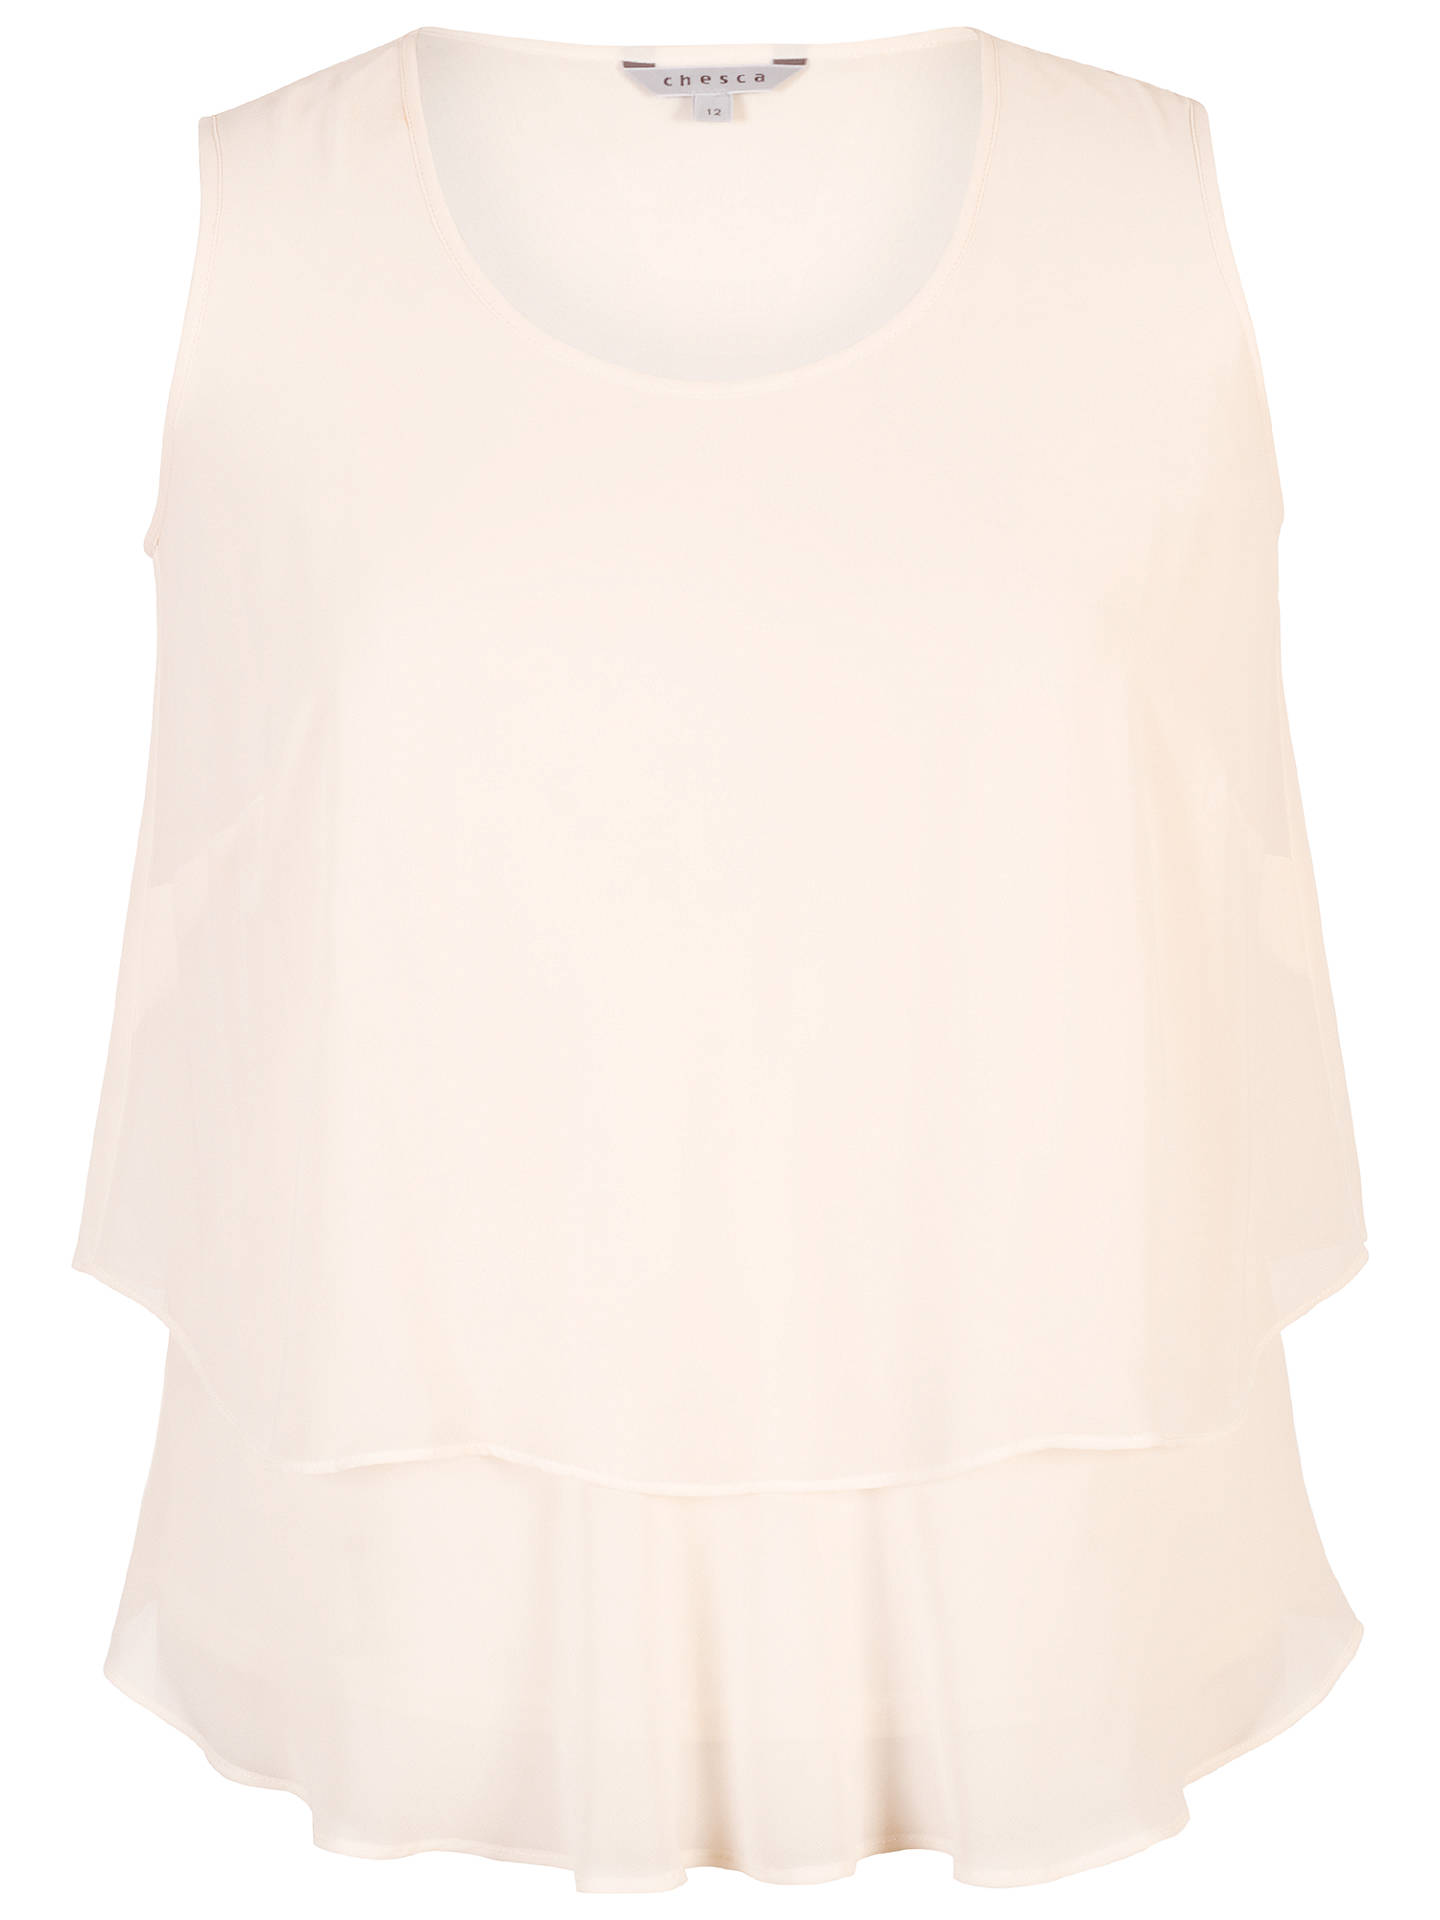 BuyChesca Wrap Back Layered Chiffon Top, Blonde, 12 Online at johnlewis.com